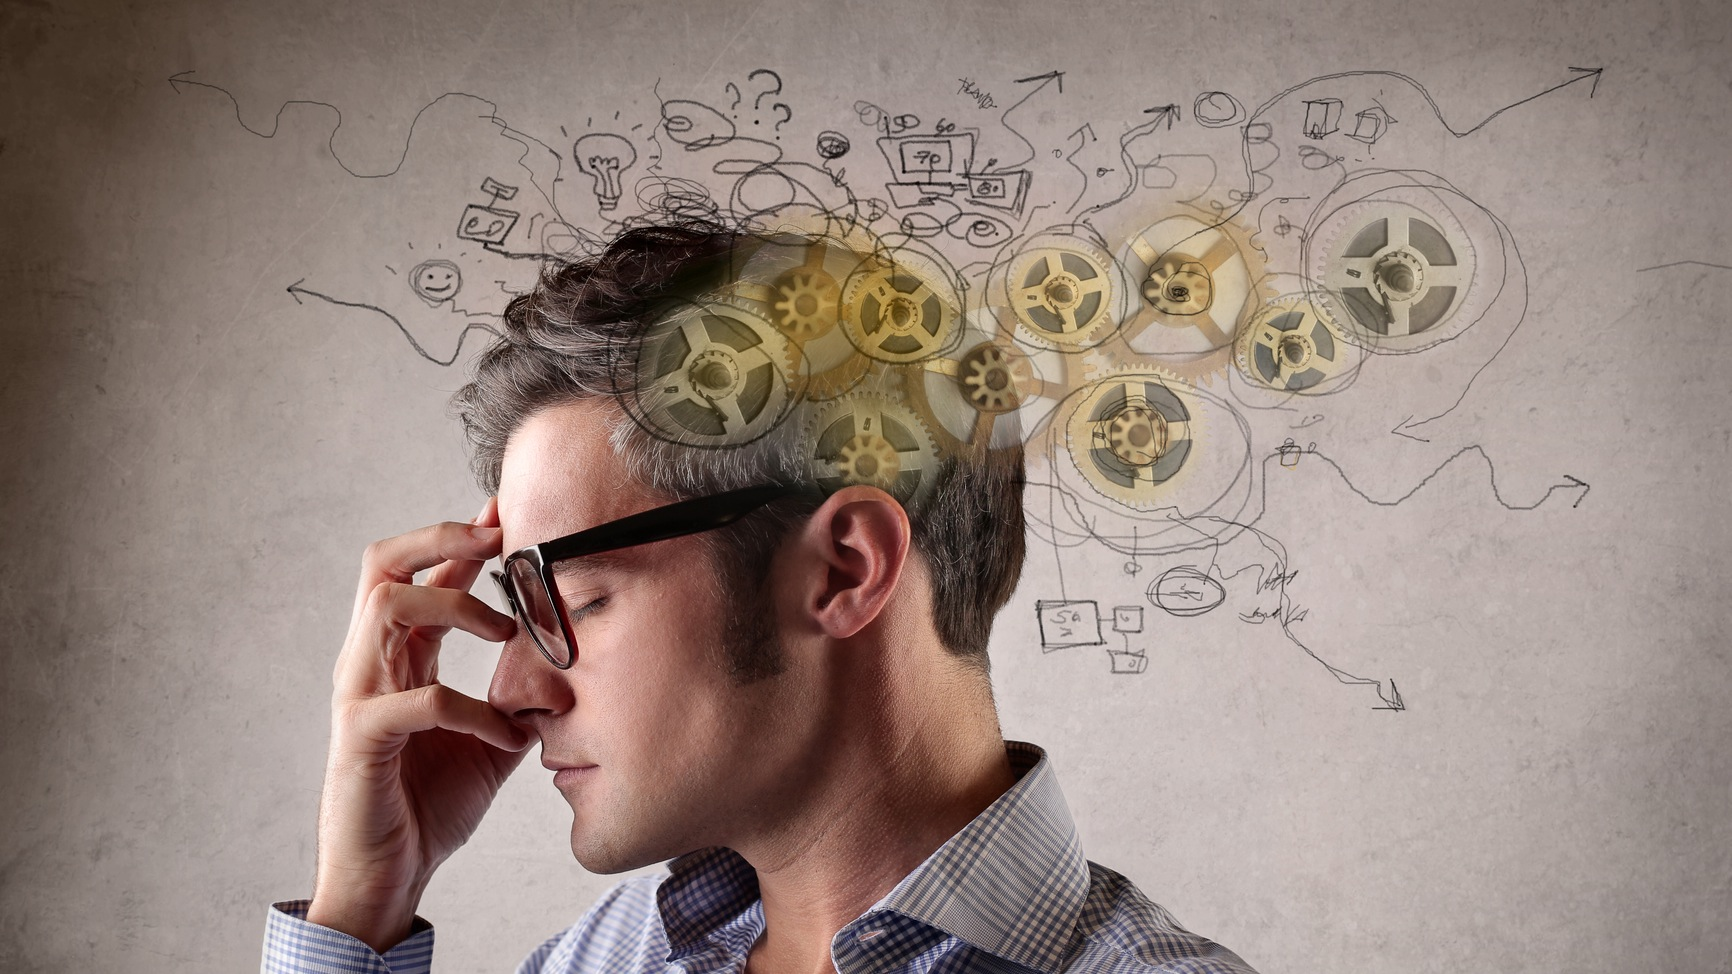 Stressed man witht hand on face and cartoon-like scribbles of gears and frustration marks around his head